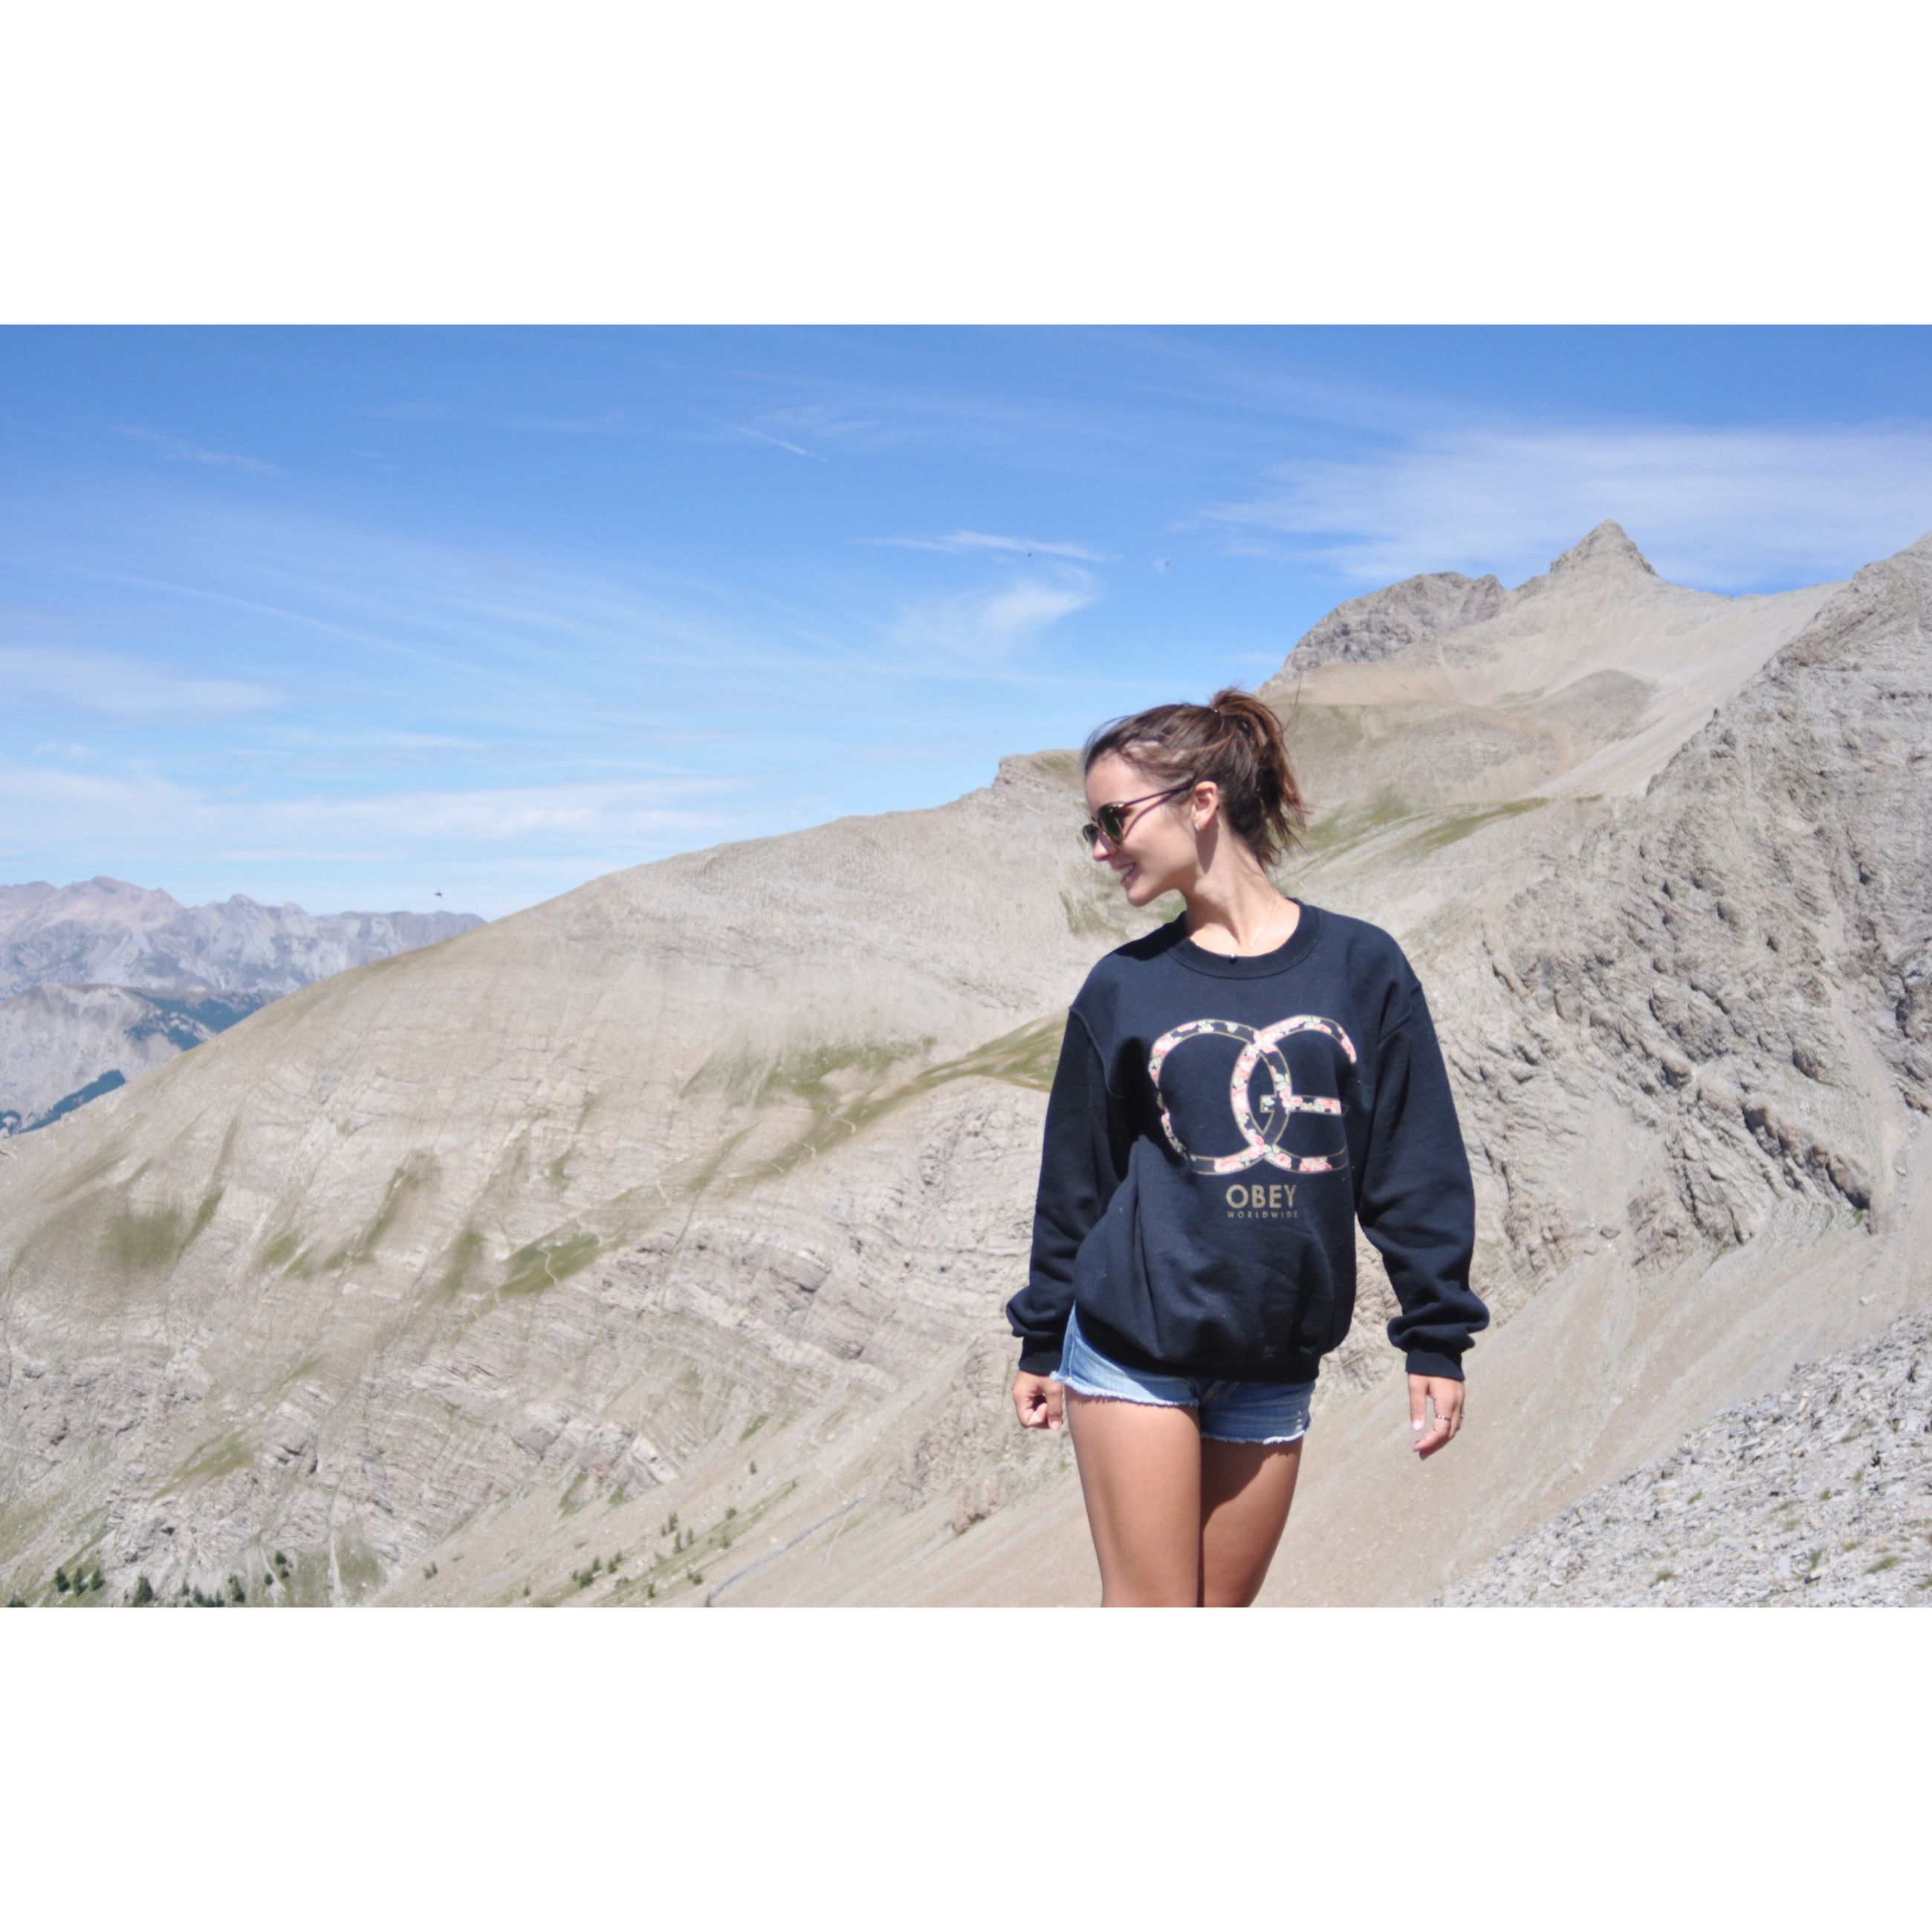 young adult, casual clothing, mountain, lifestyles, sky, person, leisure activity, standing, transfer print, portrait, full length, looking at camera, auto post production filter, young women, landscape, tranquil scene, tranquility, scenics